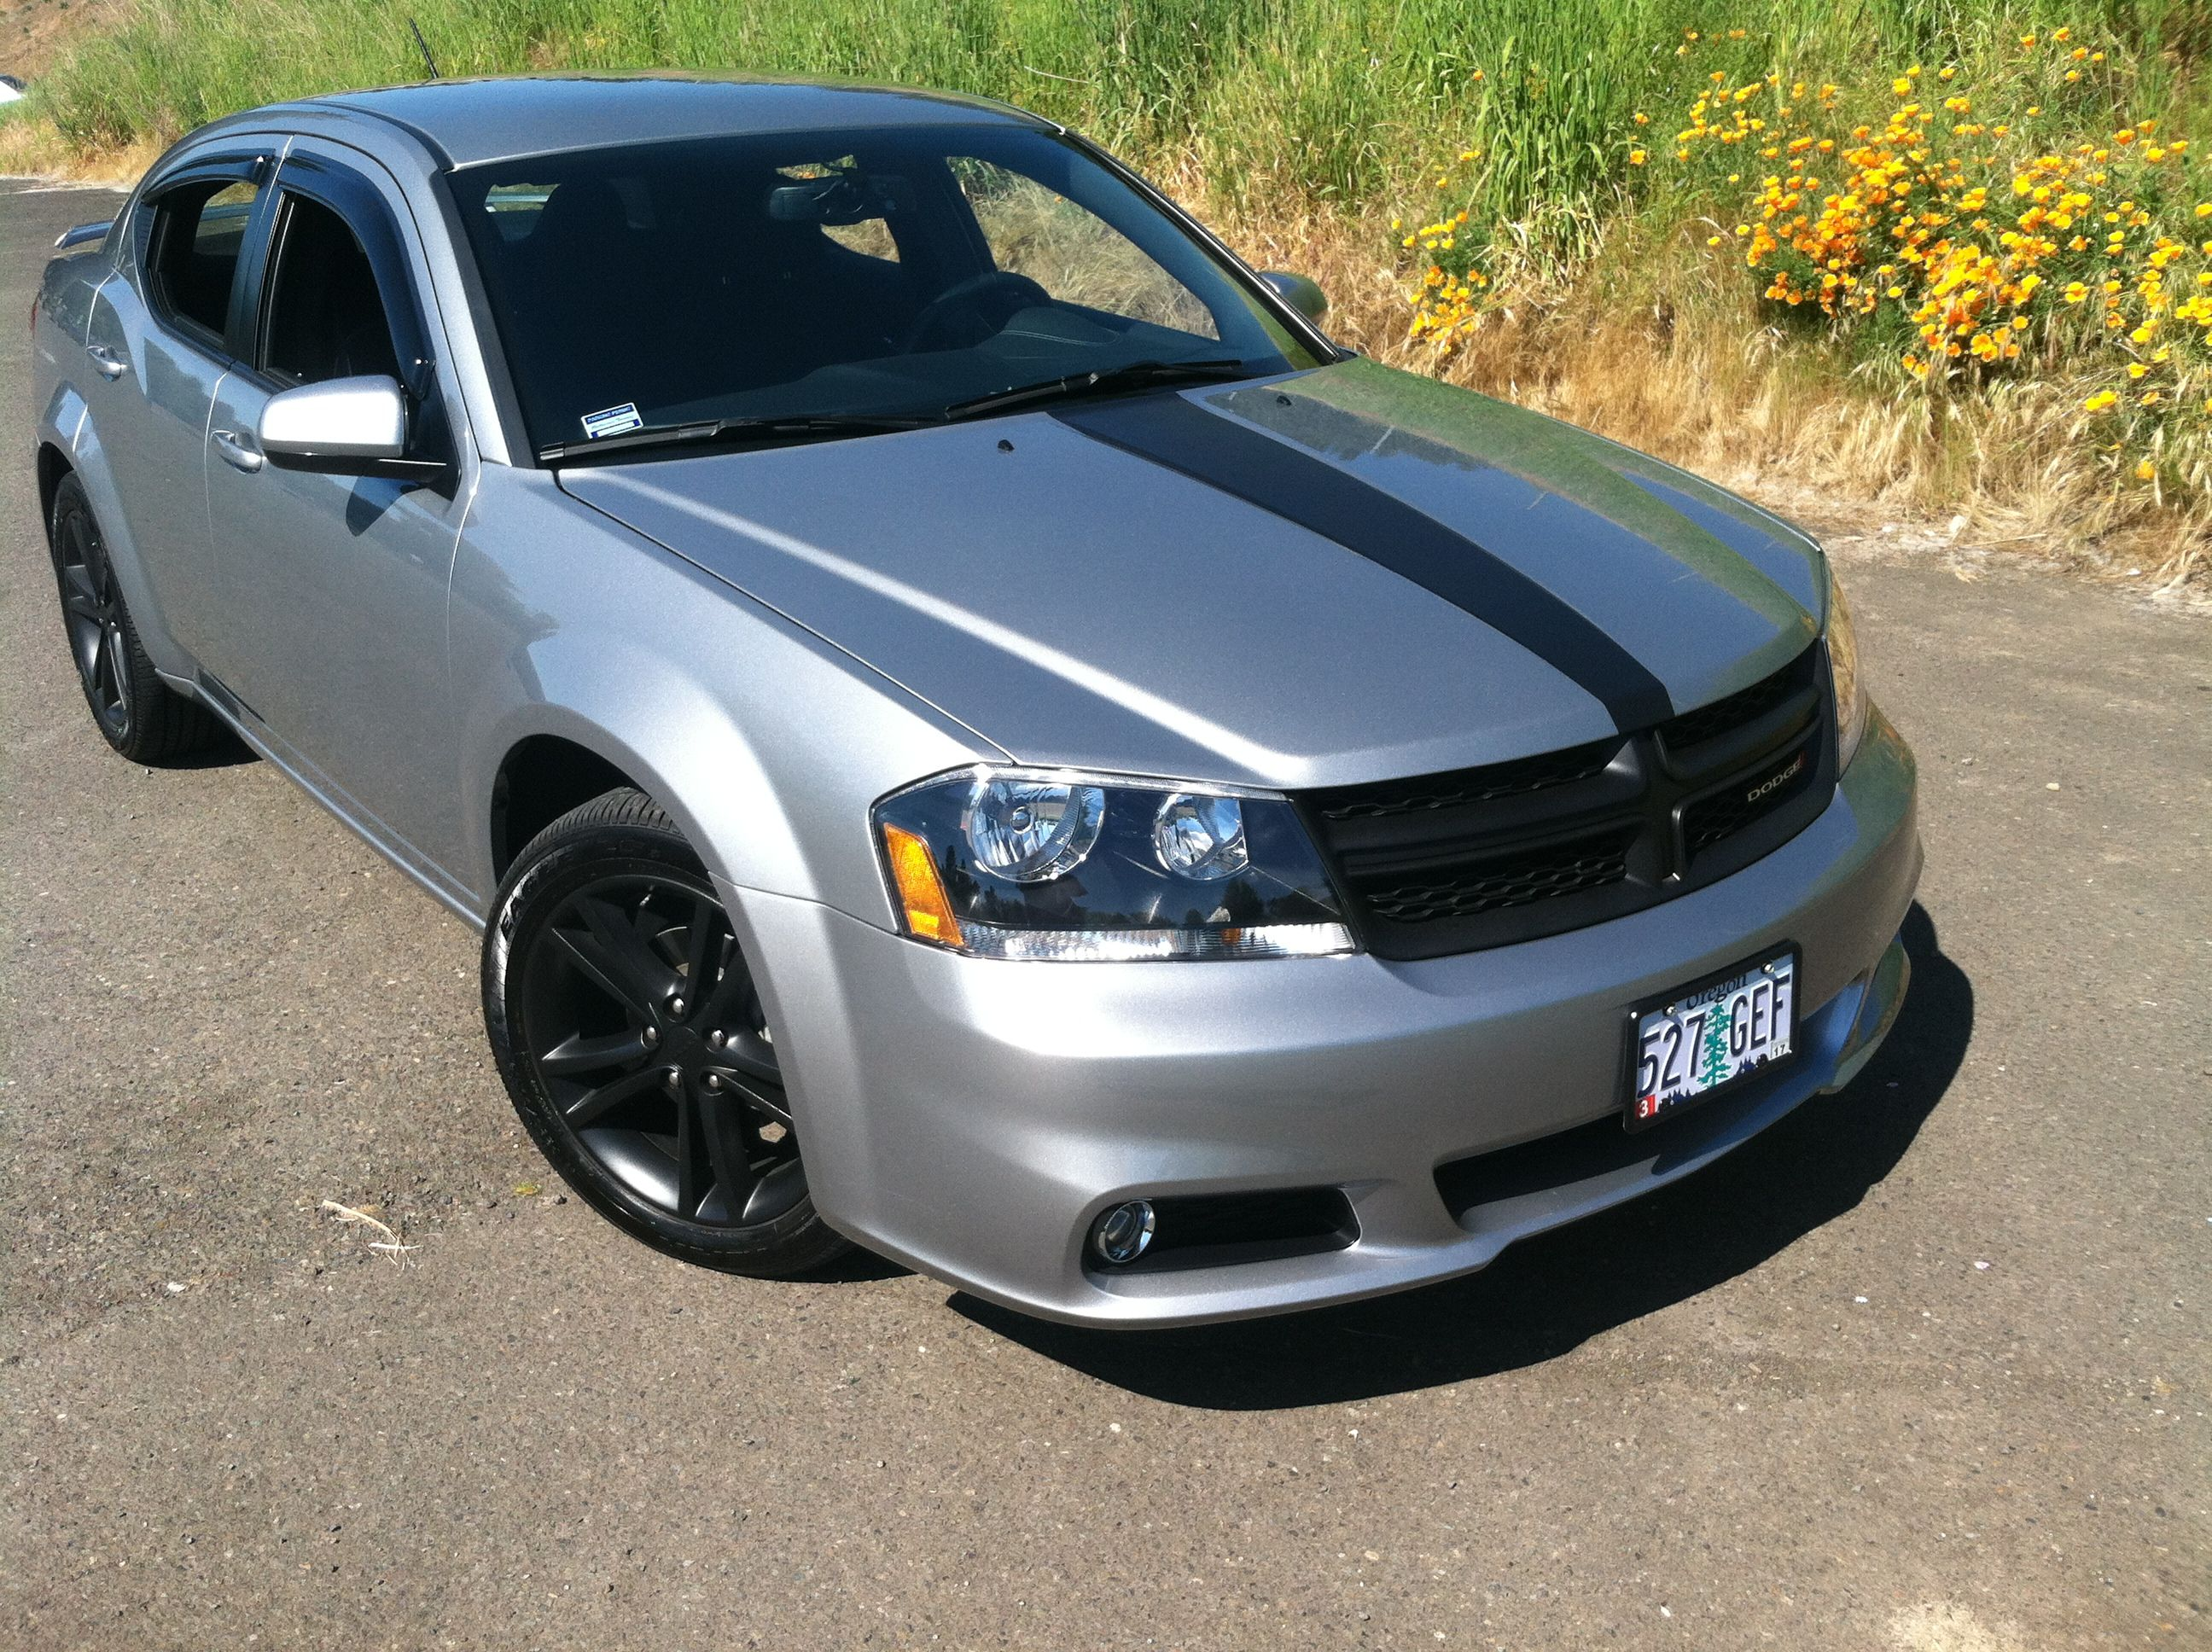 2013 dodge avenger sxt stripe badges wheels and grill were all done by myself